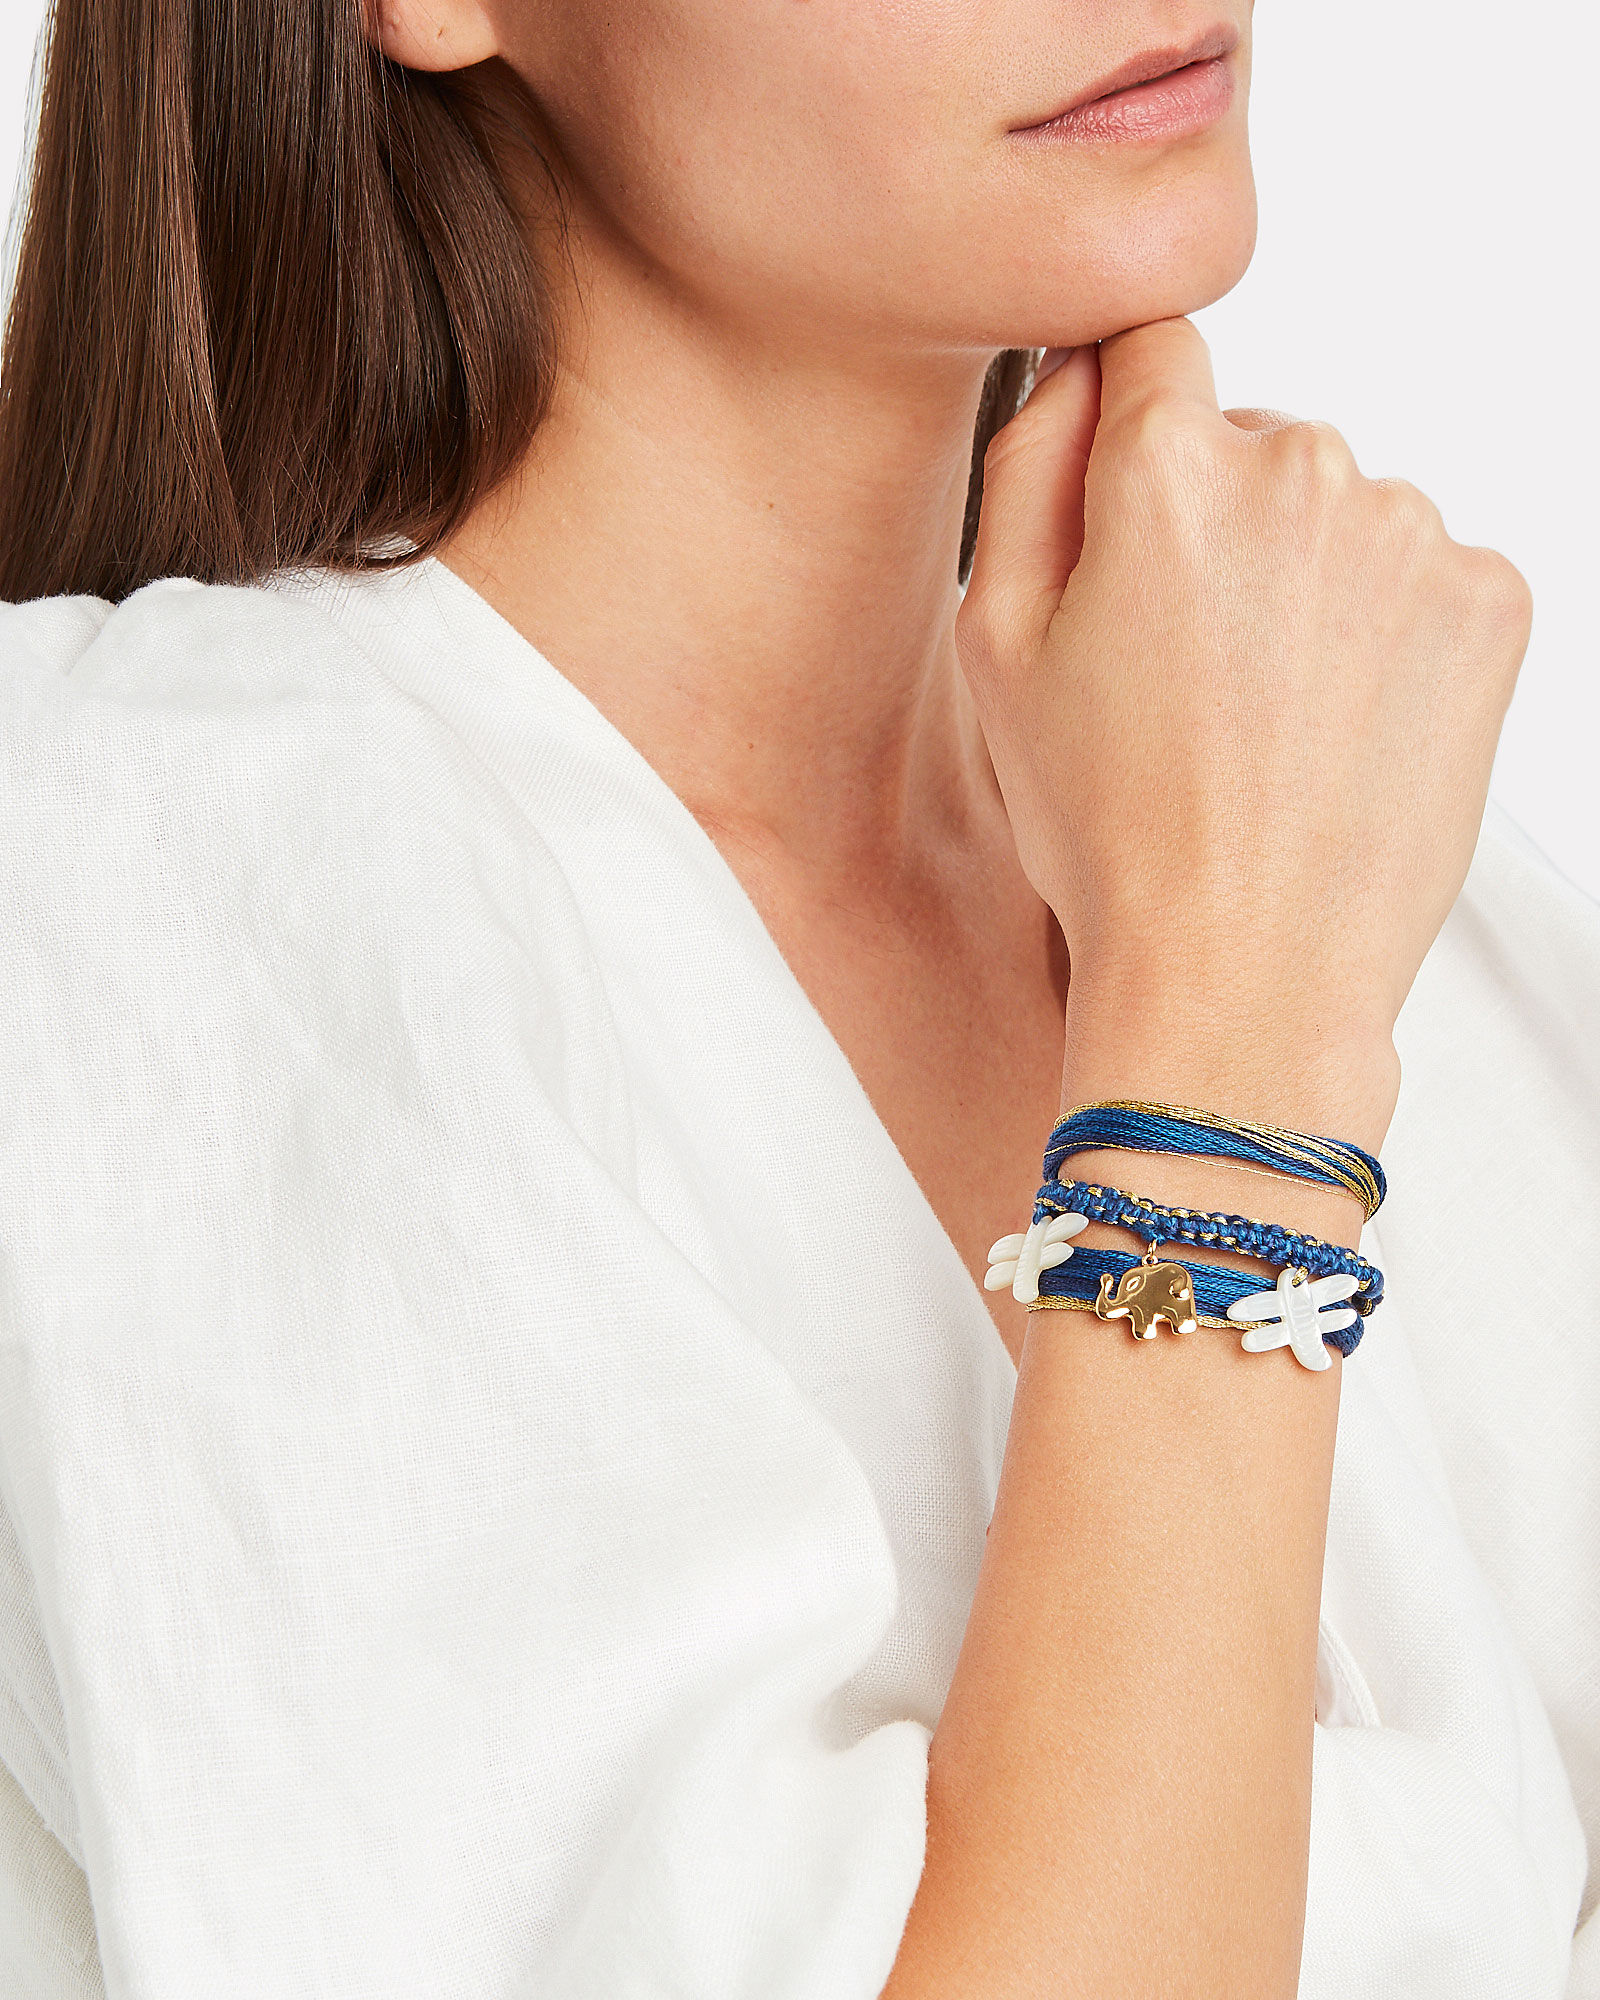 Honolulu Elephant Wrap Bracelet, BLUE-DRK, hi-res